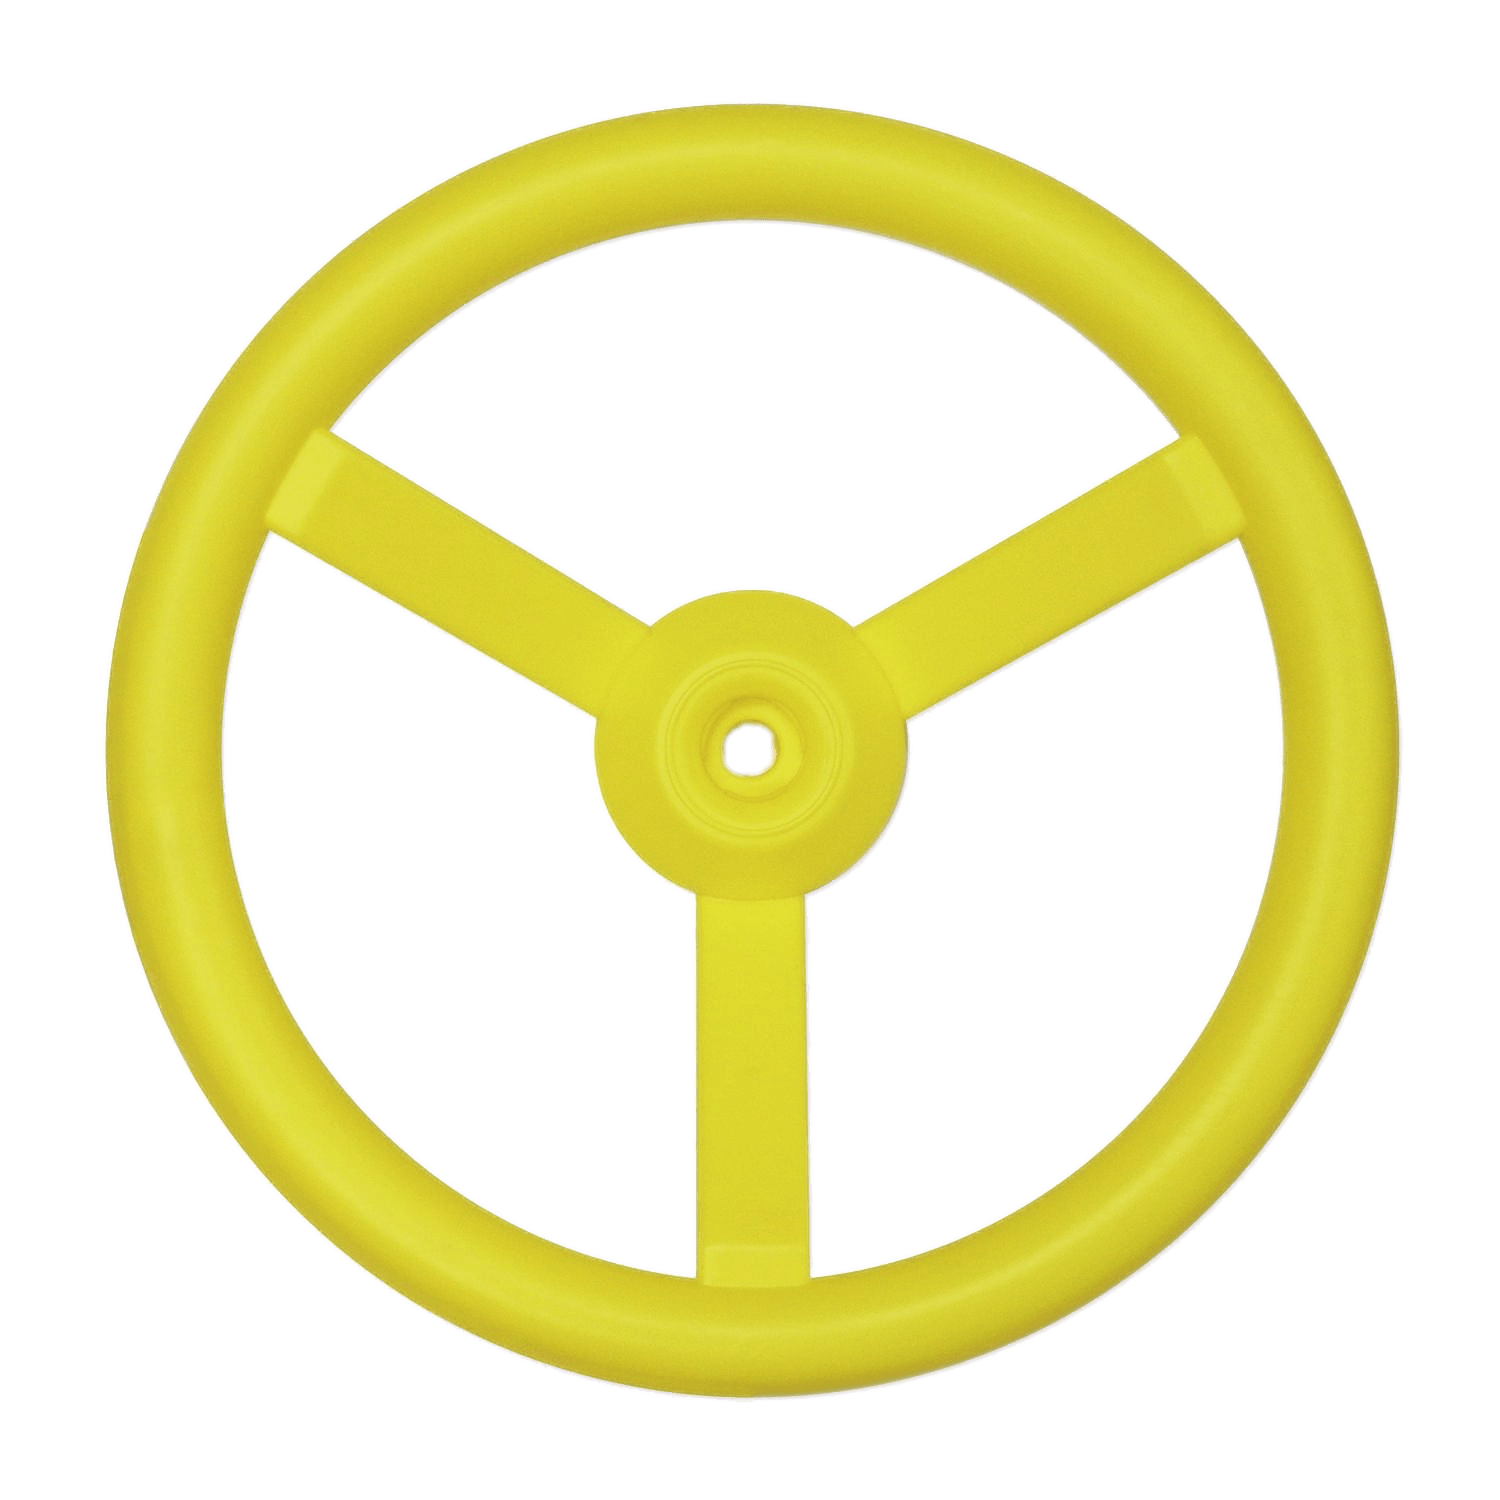 Car steering wheel clipart banner black and white download Yellow Steering Wheel transparent PNG - StickPNG banner black and white download